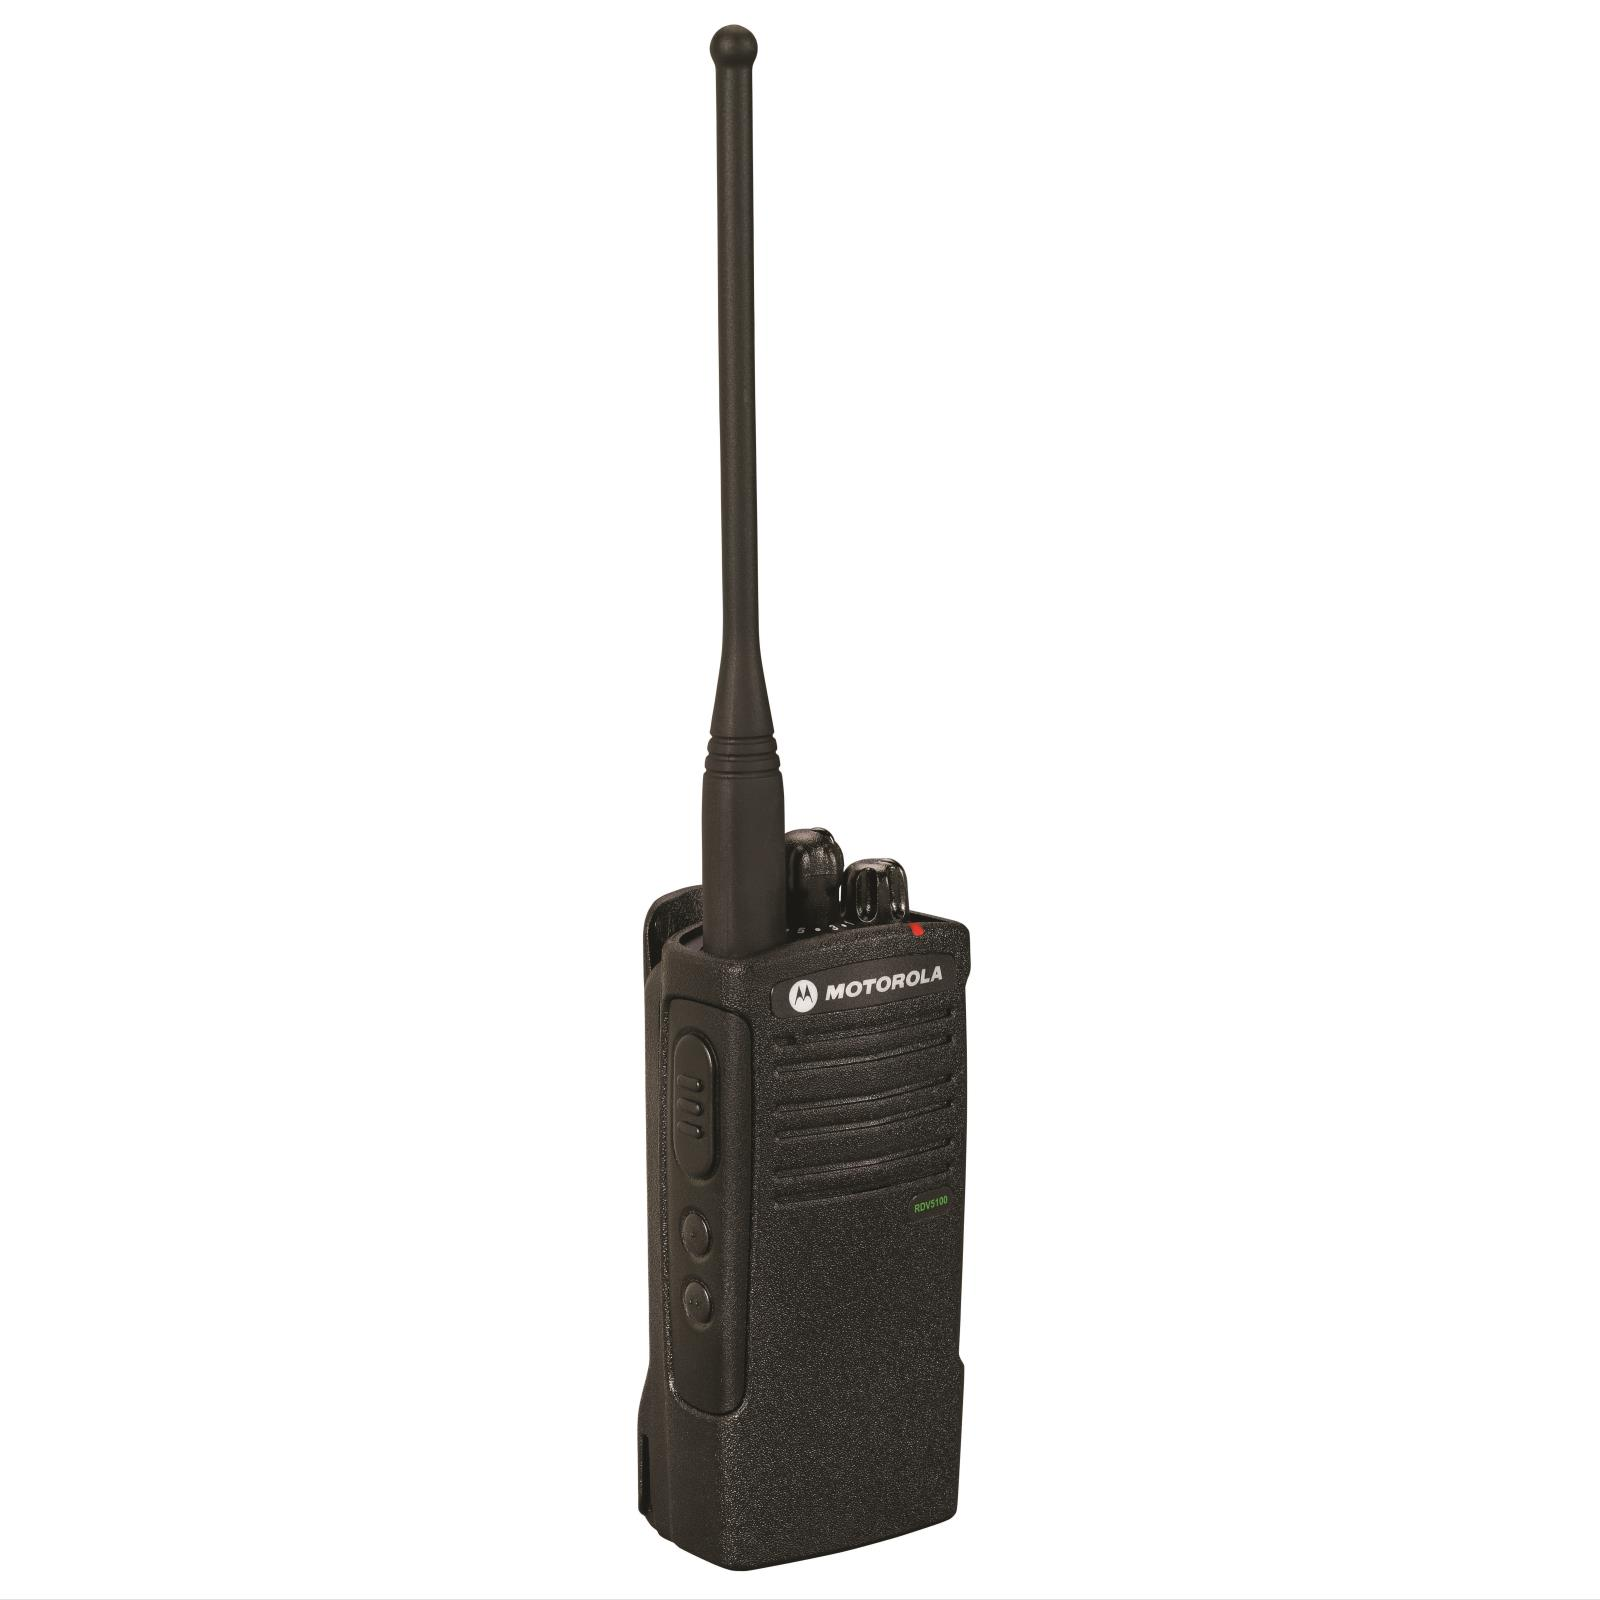 Motorola VHF Heavy Duty Radio